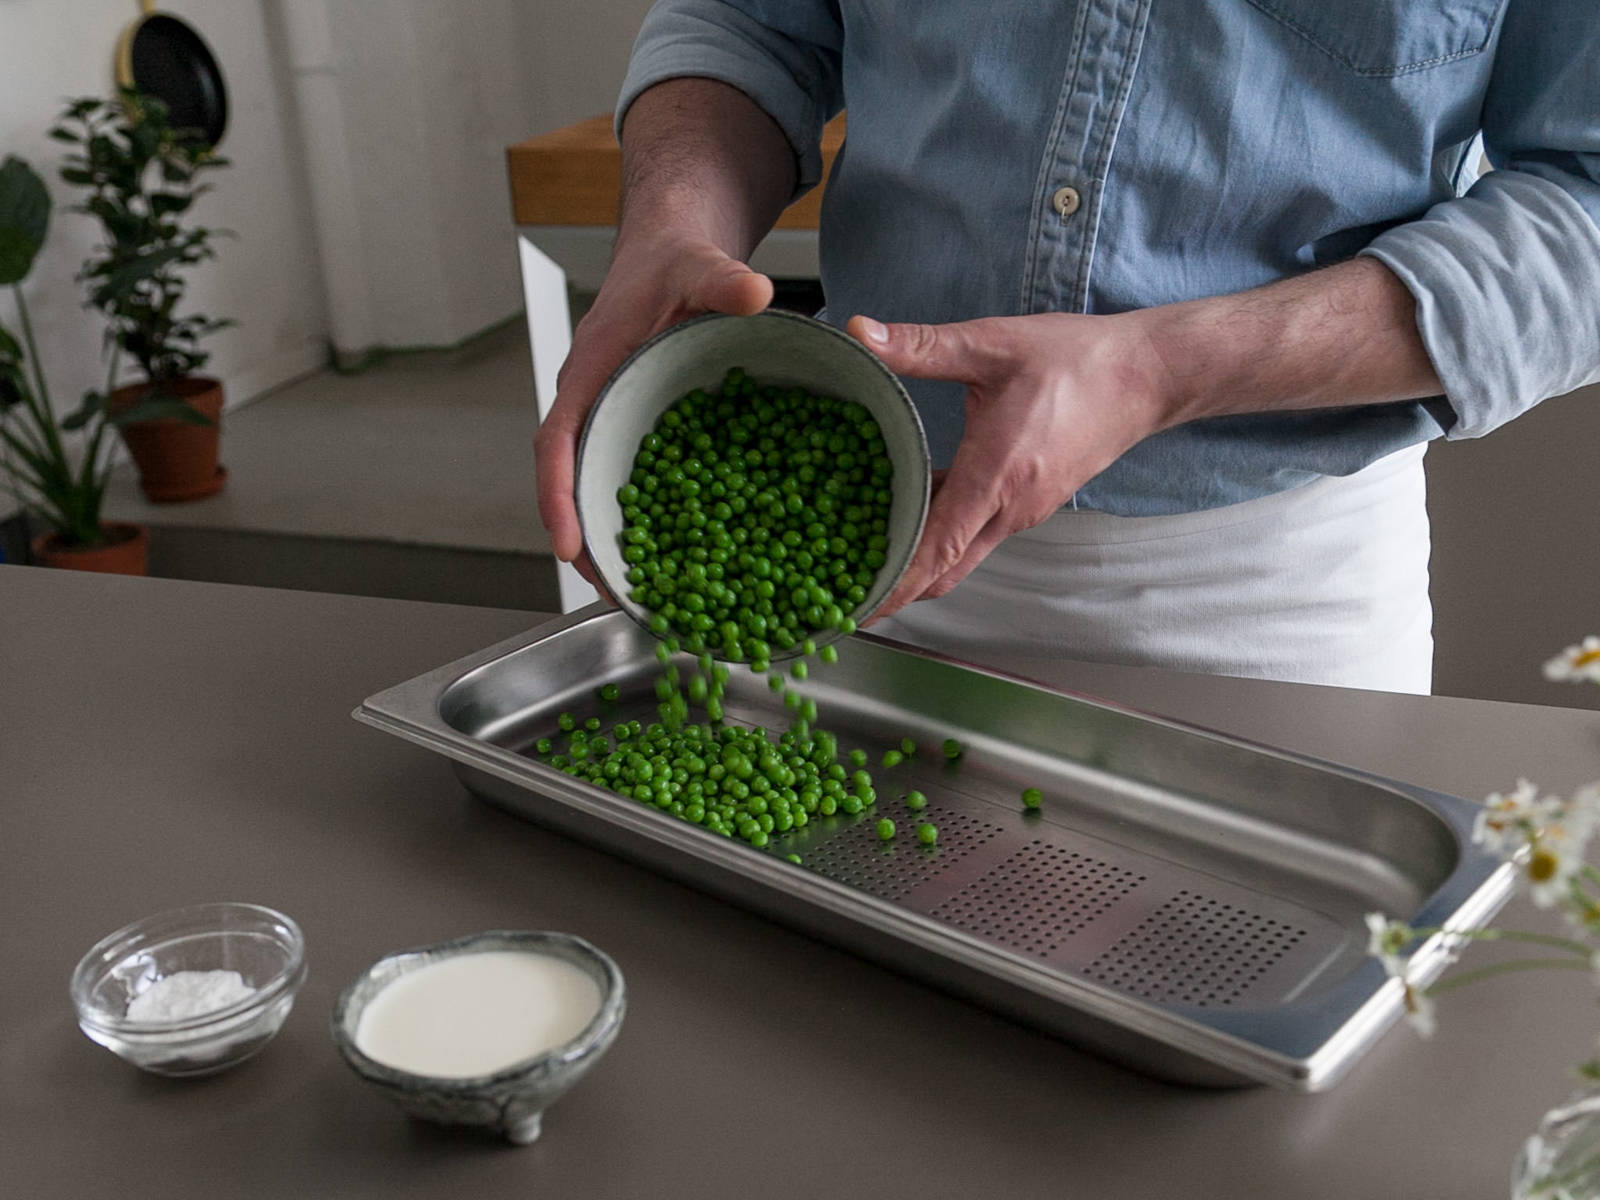 Transfer peas to cooking container and steam at 100°C/210°F for approx. 2 min. Serve pork tenderloin, potatoes, and peas with sauce. Enjoy!